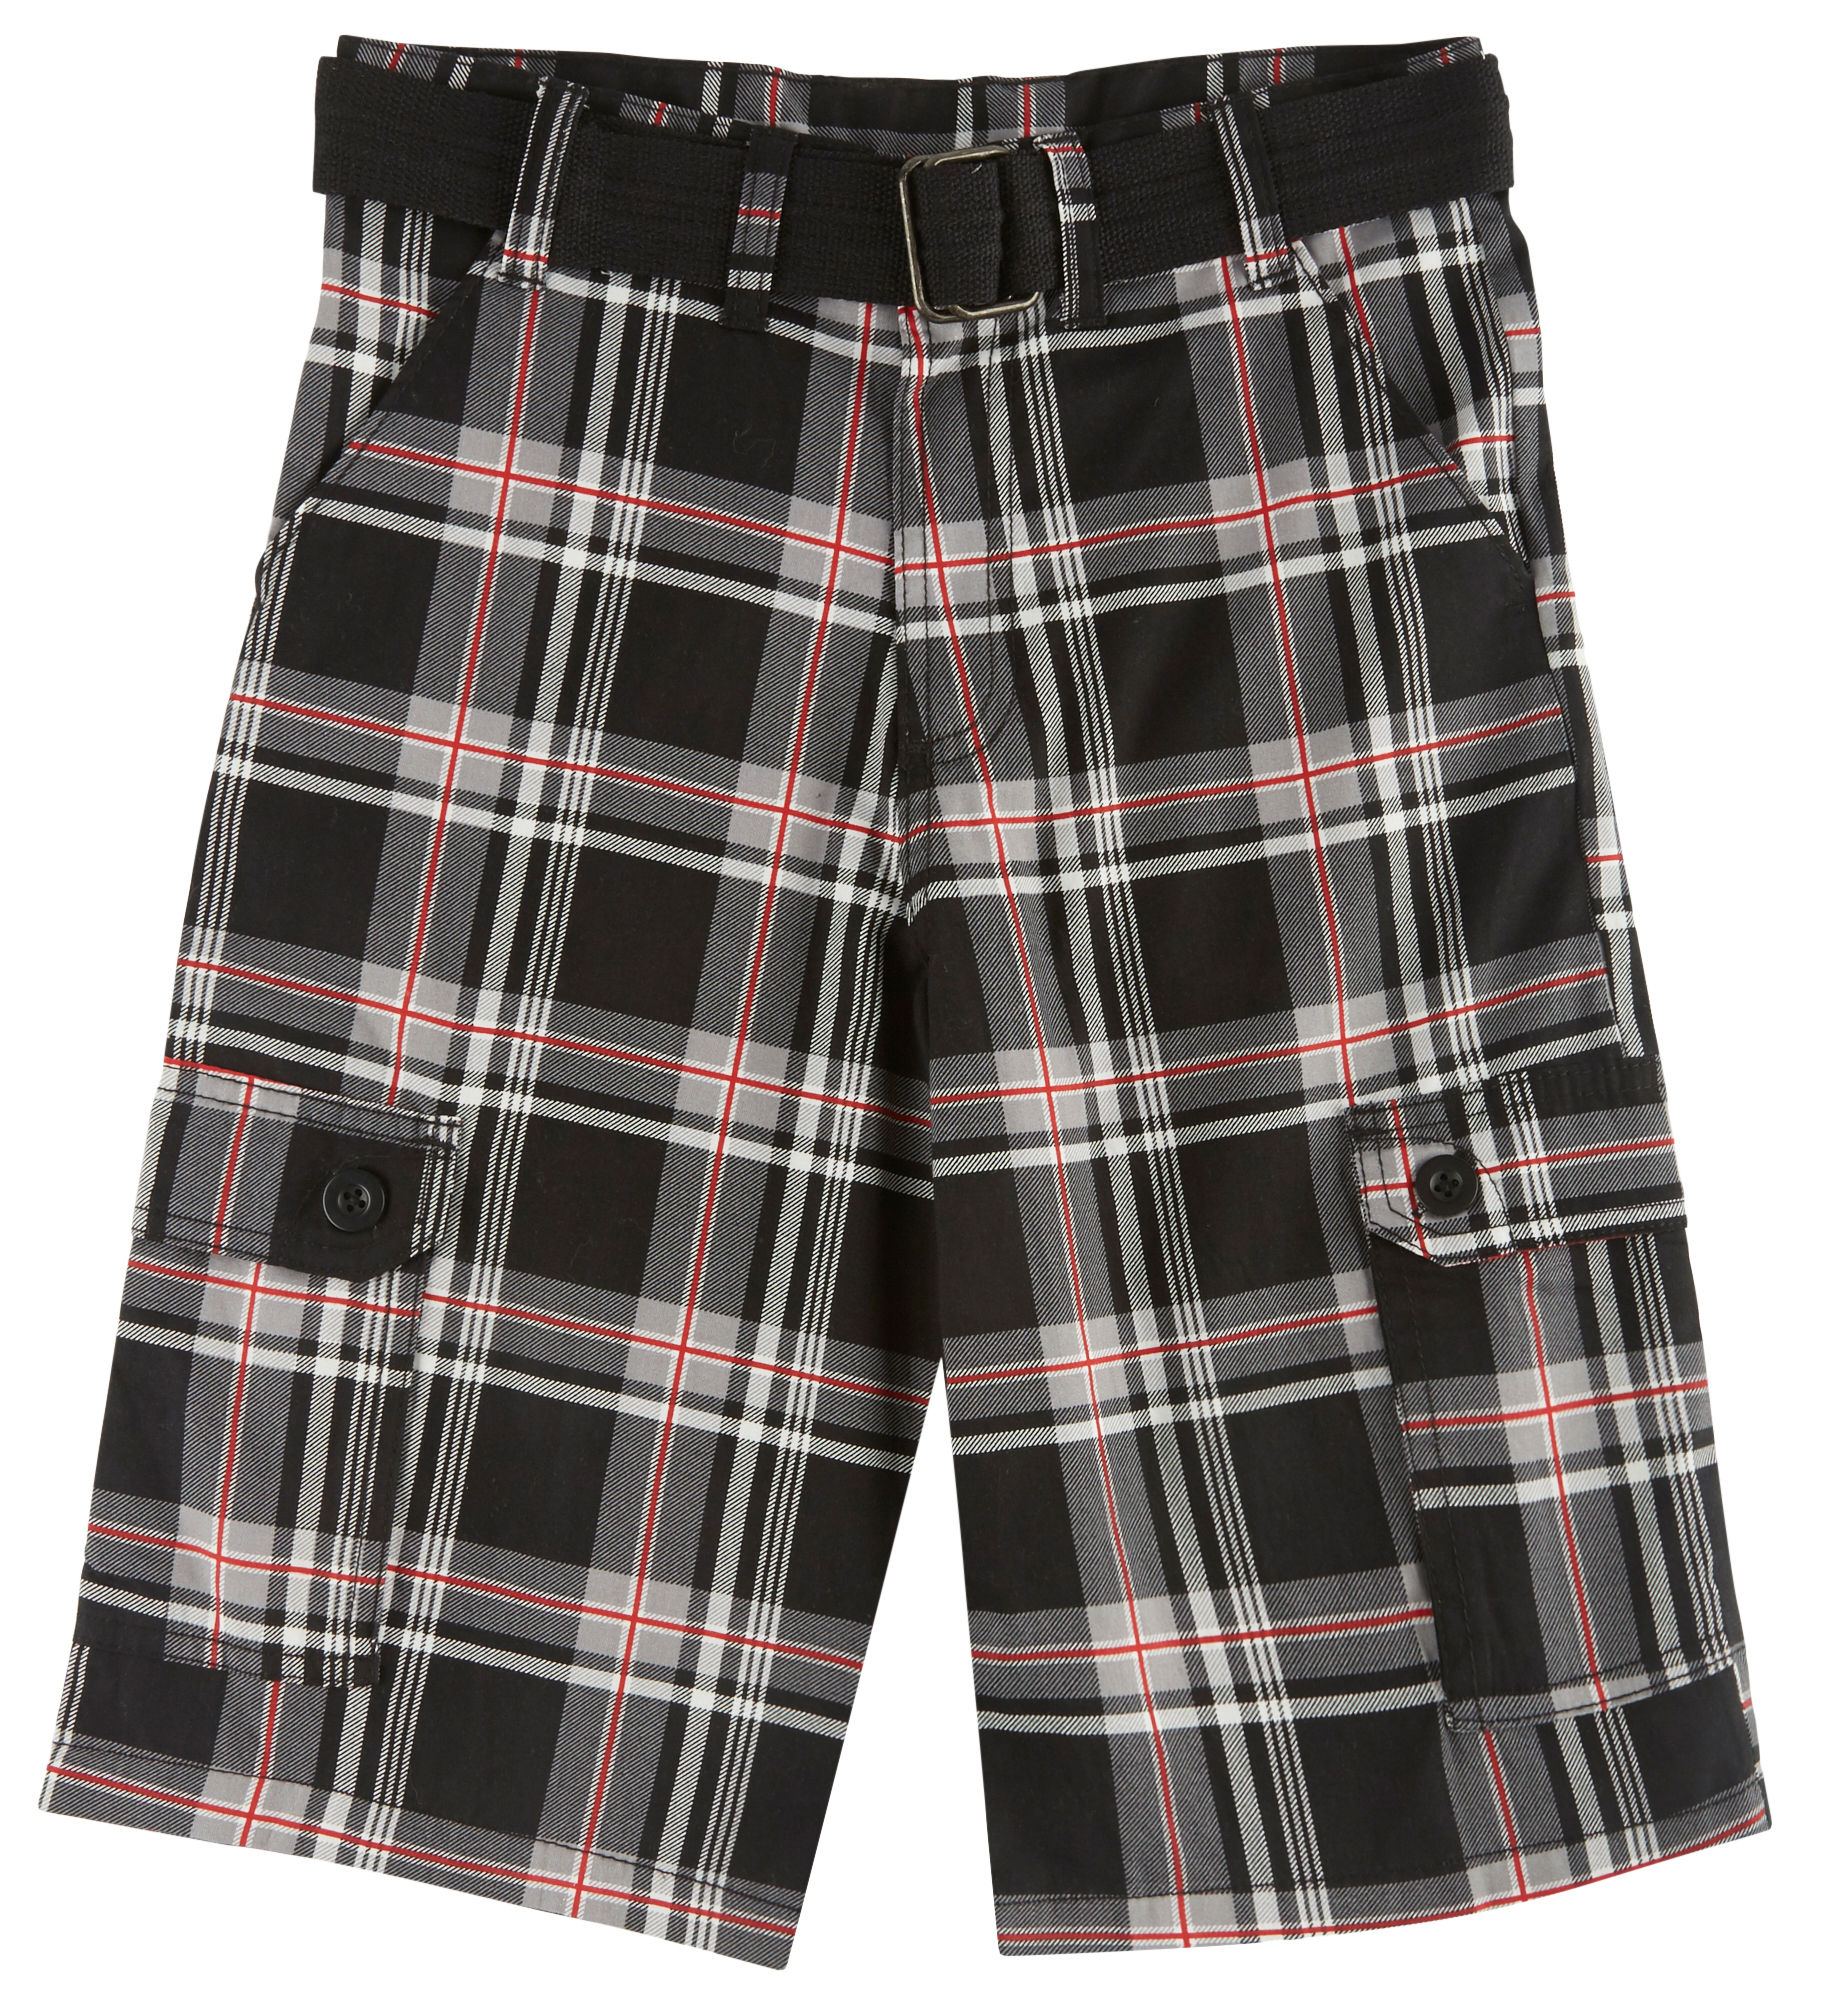 The perfect boys shorts for in and out of school are available at The Children's Place. Shop at the PLACE where big fashion meets little prices!